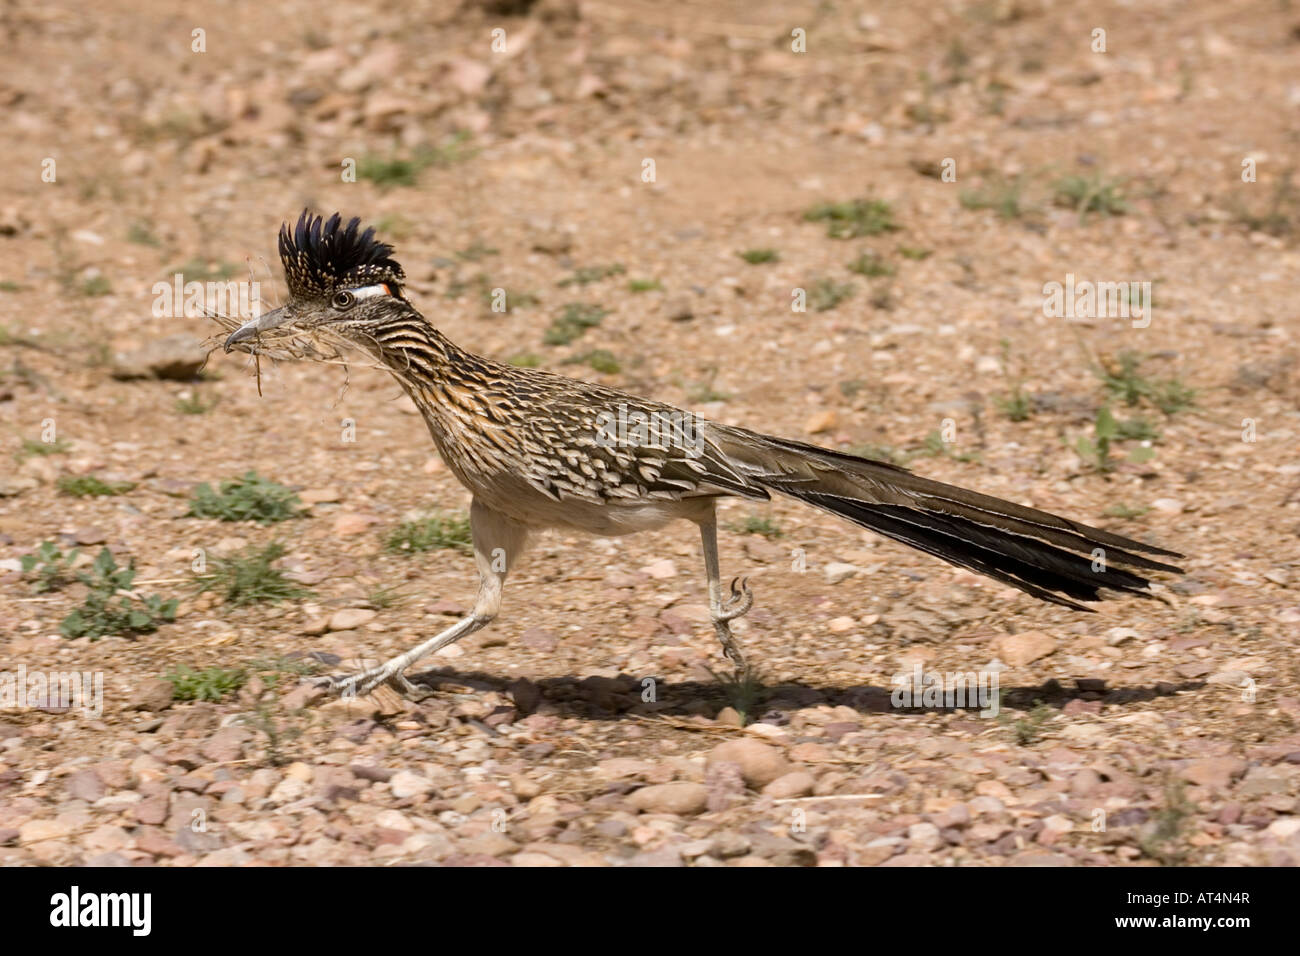 Greater Roadrunner, Geococcyx californianus, with nesting material. - Stock Image